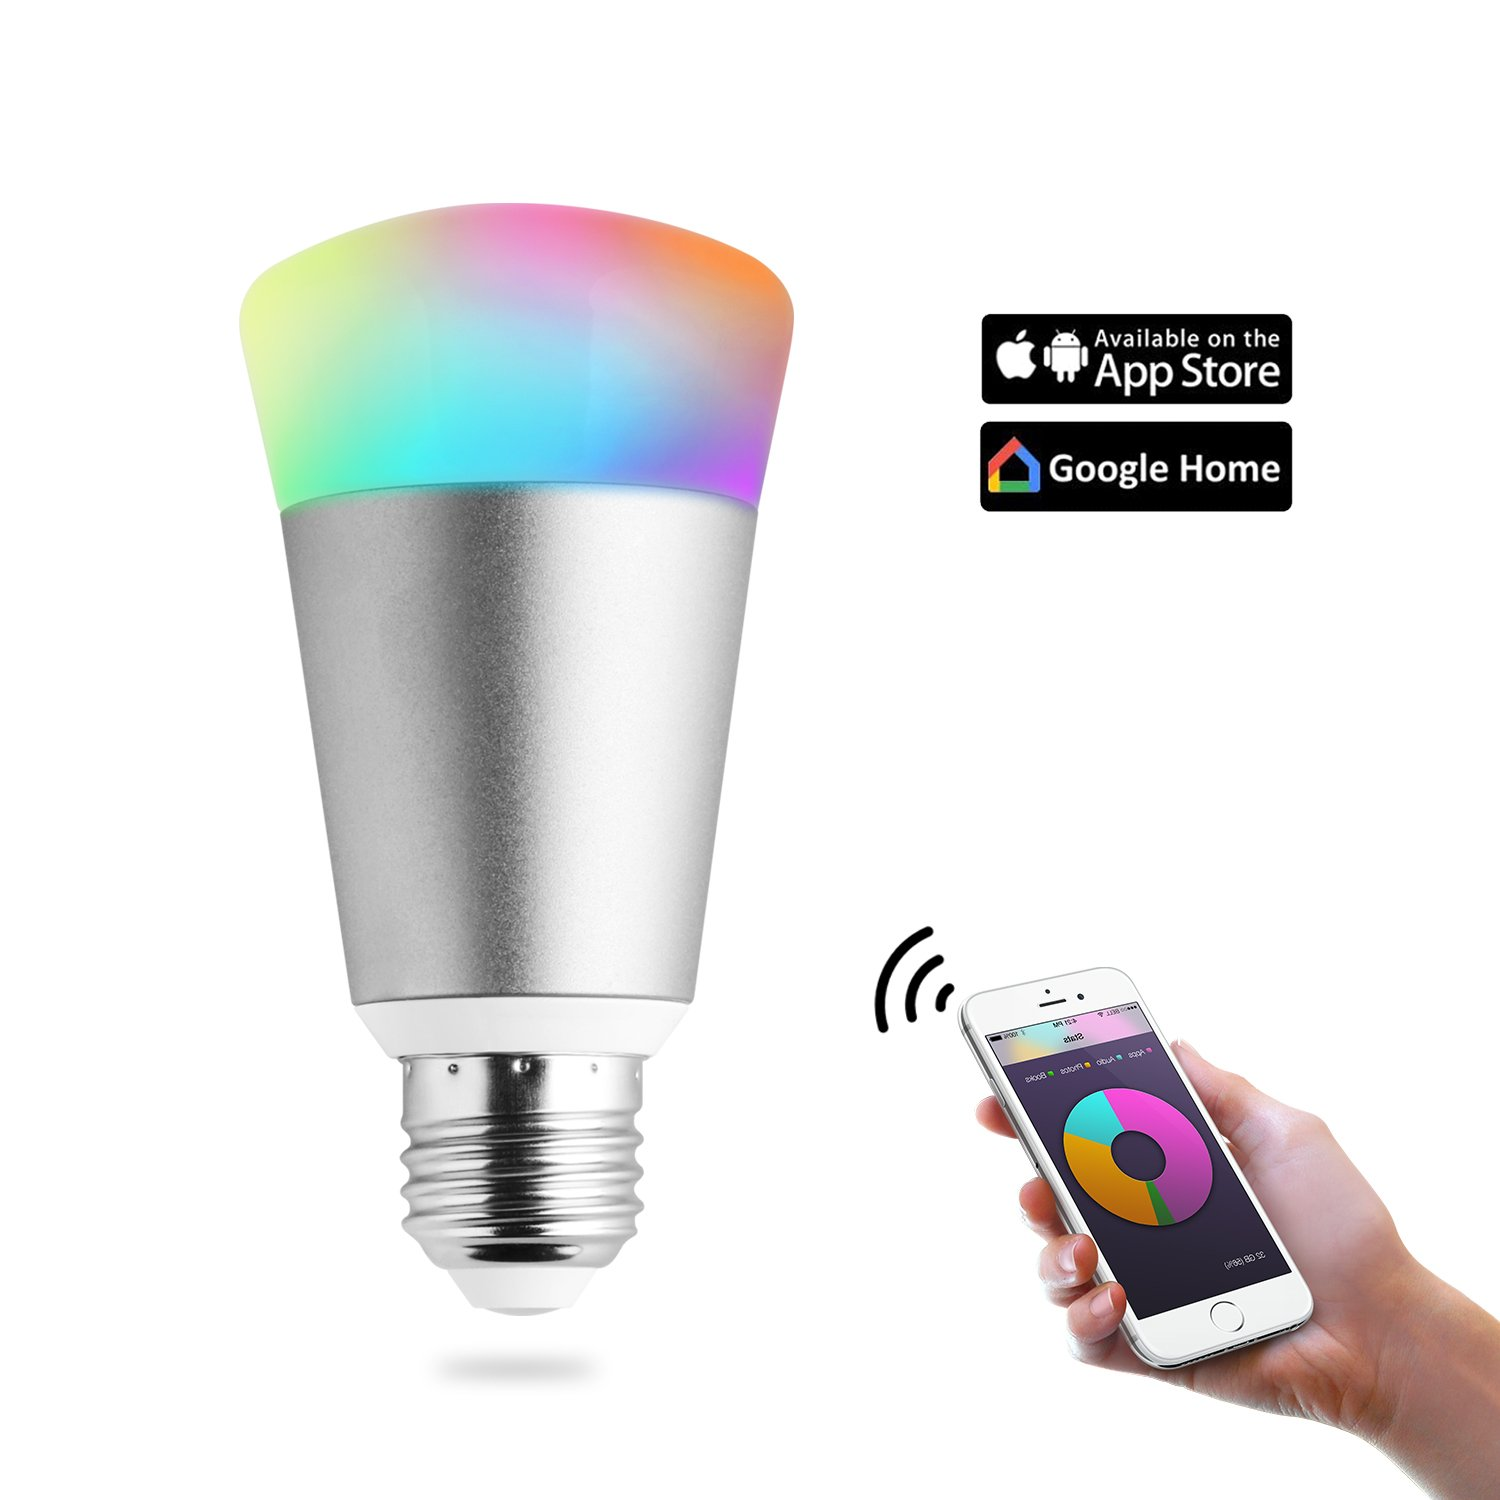 Light Bulbs Wifi Smart Led Bulb,Party Bulb wireless lamp Work with Amazon Echo dot & Google Home, Dimmable Multicolored Color Changing, IOS & Android Smartphone Remote Control (7W,Silver) by QQPOW